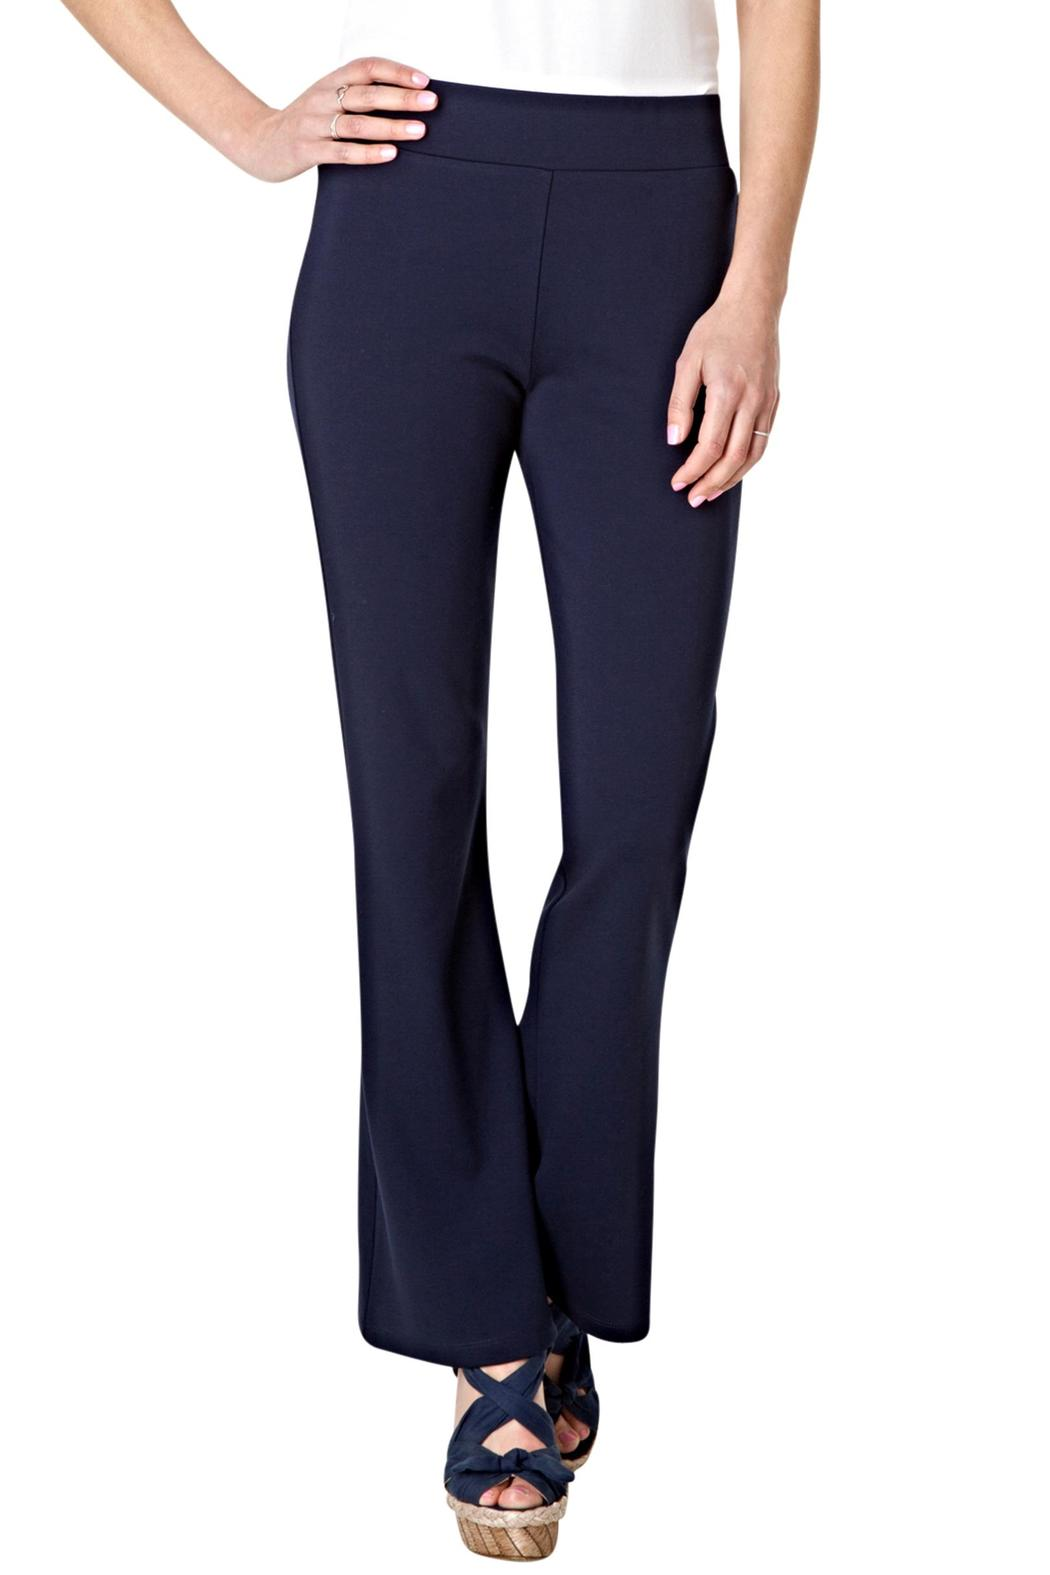 Yest Blue Bell Pants - Main Image